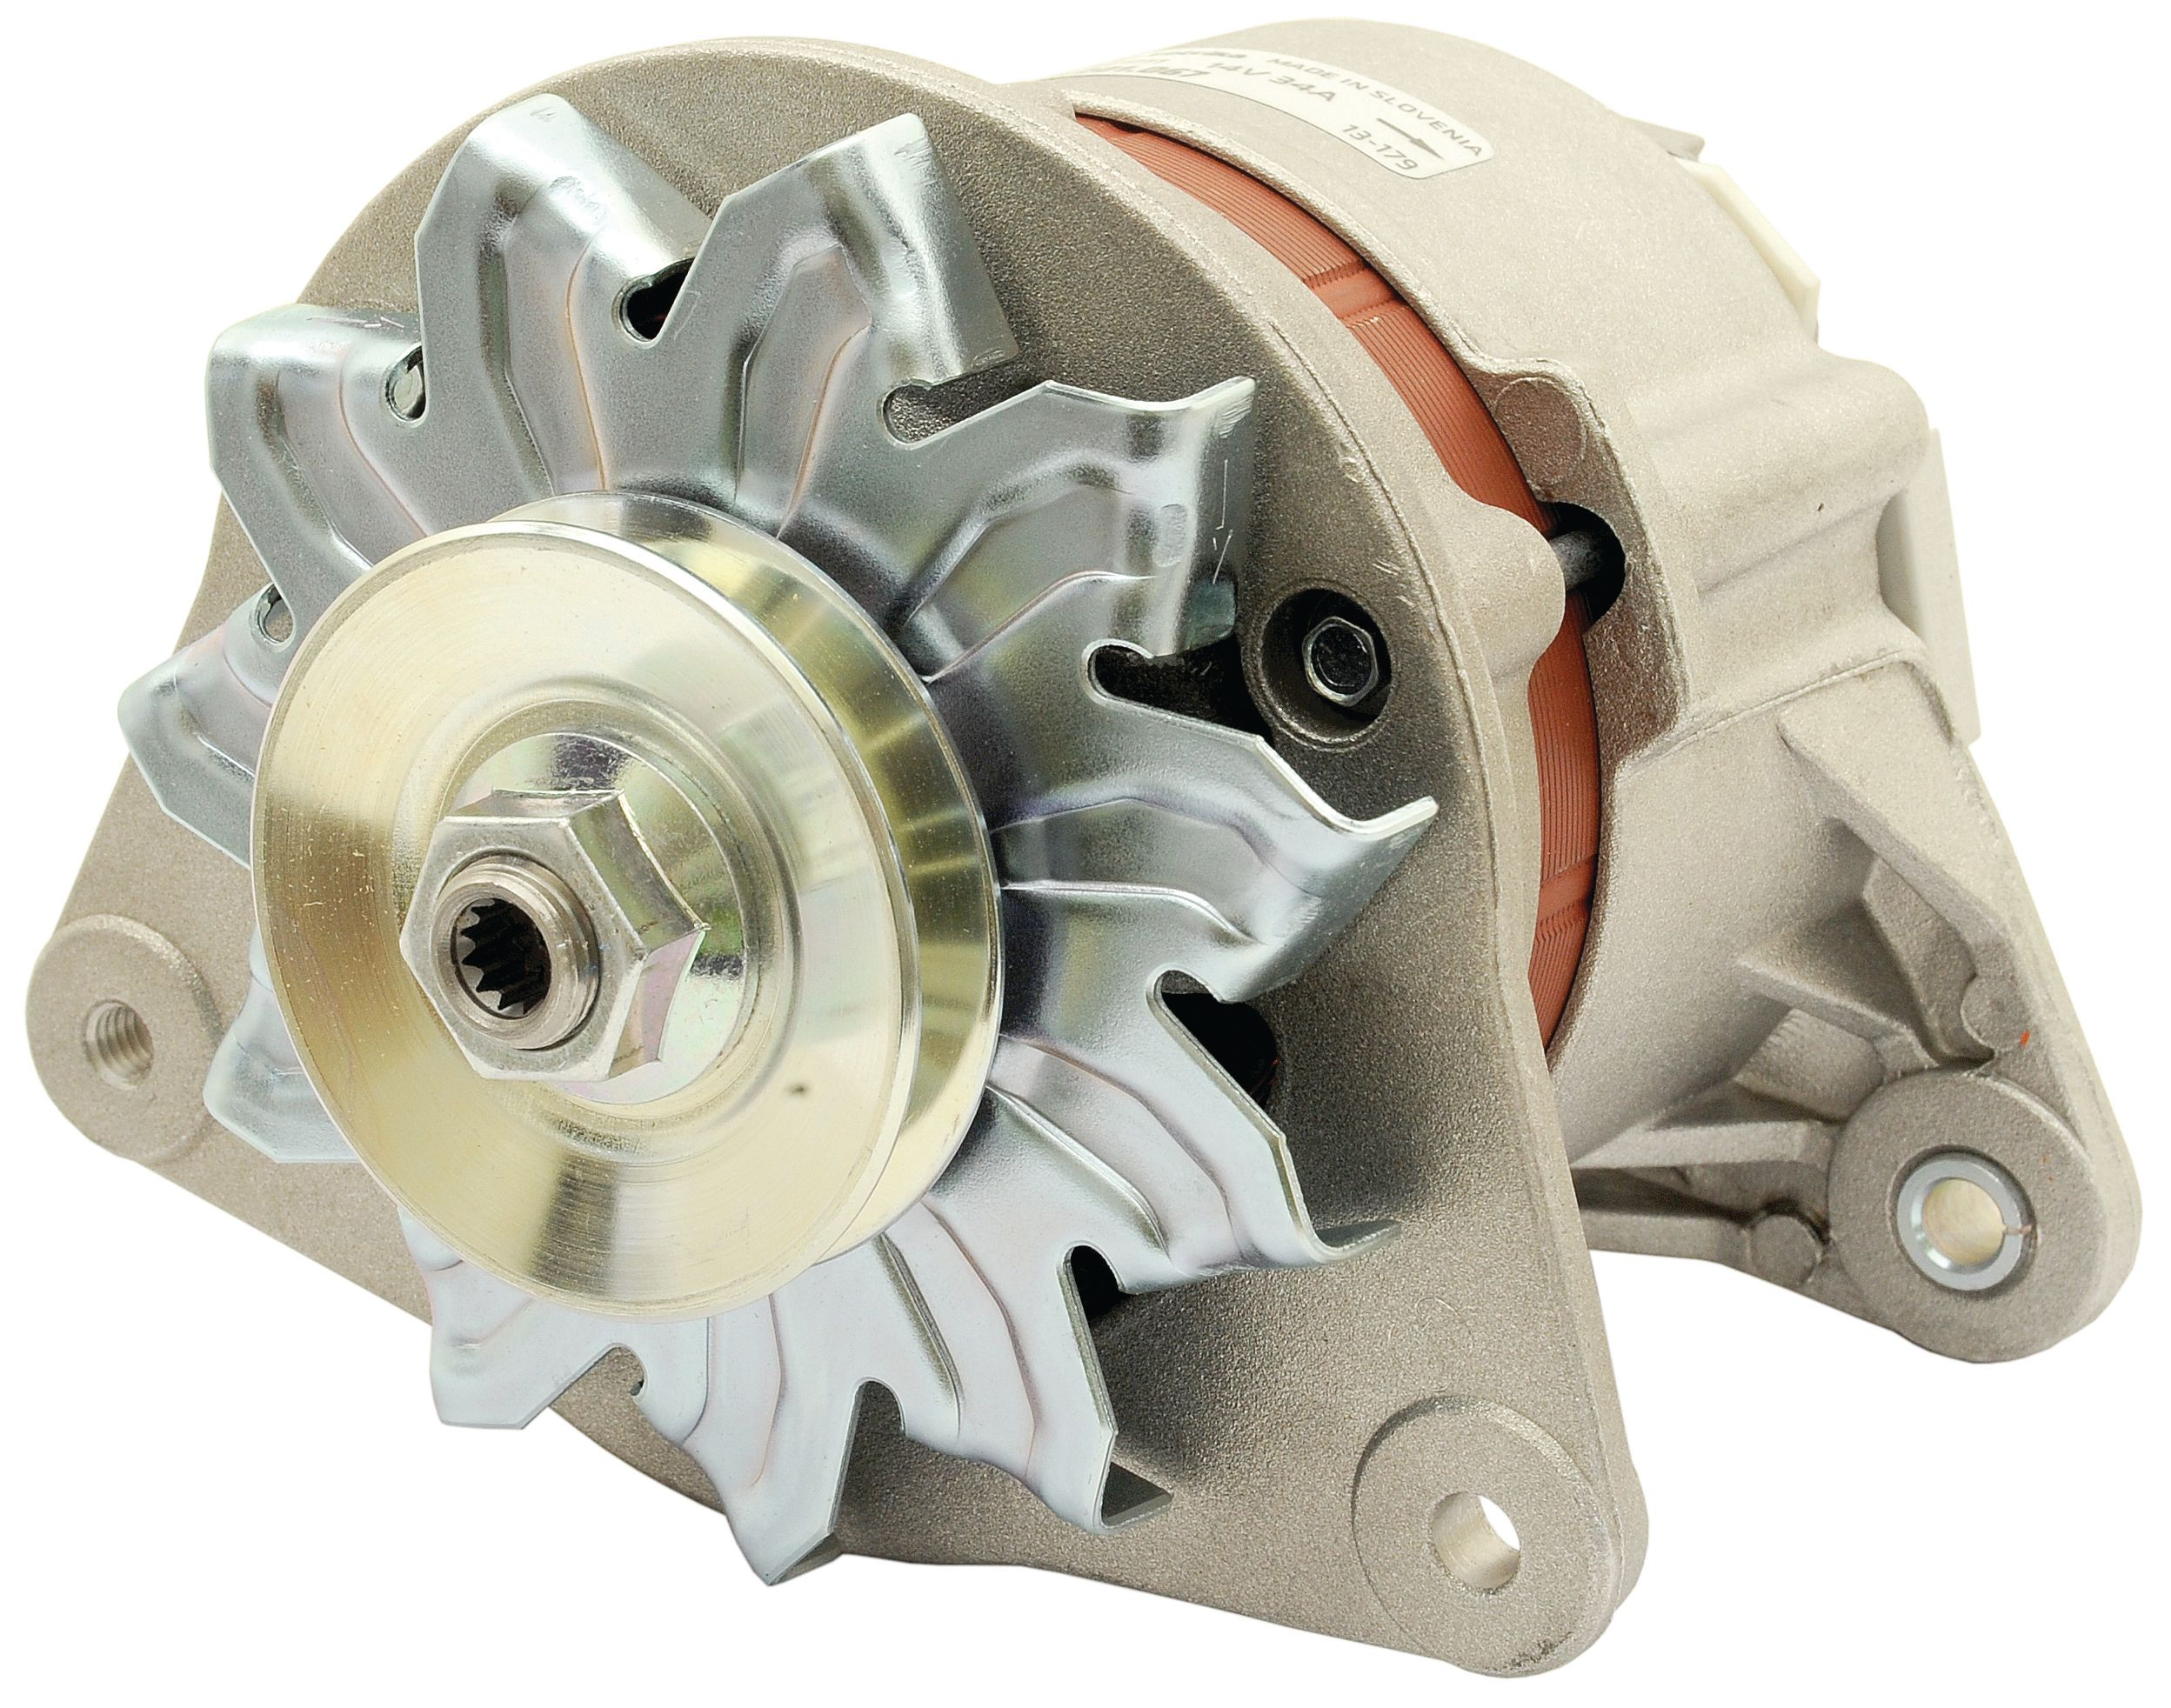 NUFFIELD ALTERNATOR (ISKRA) 359590